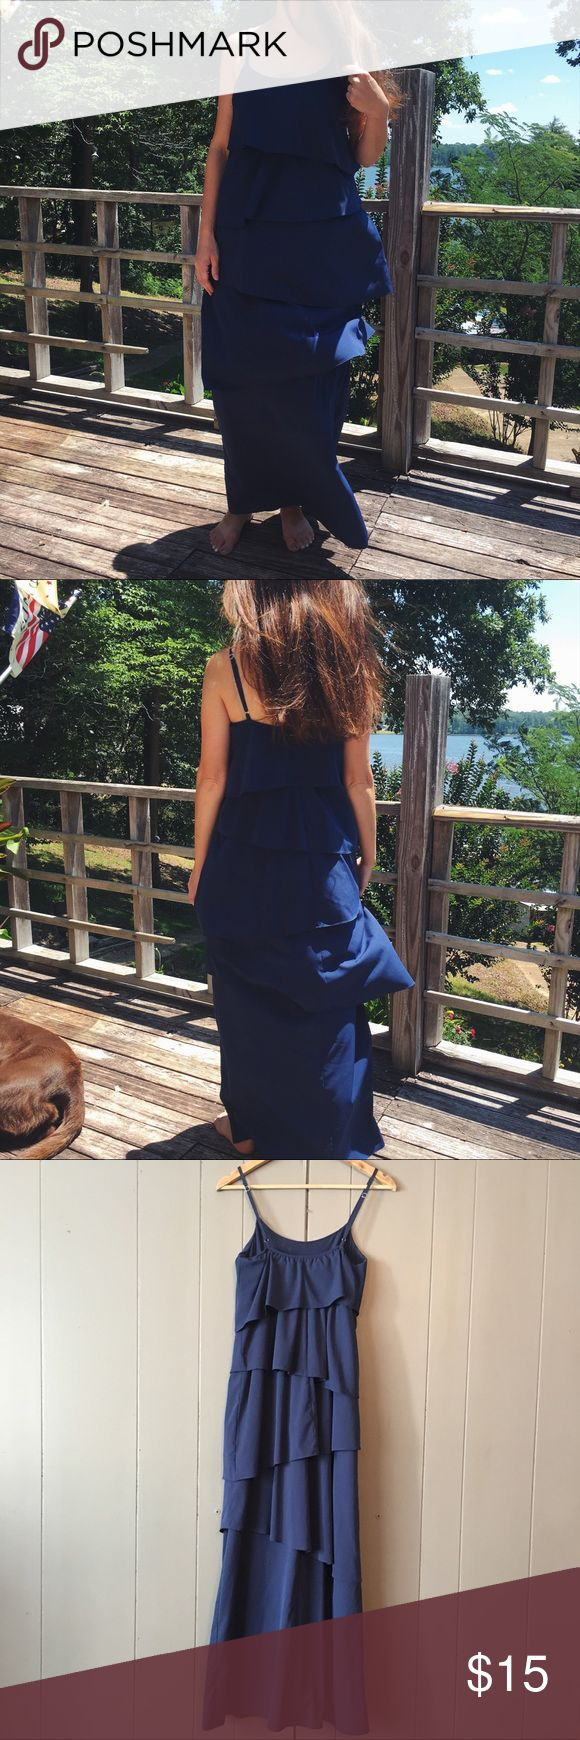 Navy Spaghetti Strap Ruffle Tiered Maxi Dress☀️ Super cute dress in excellent used condition! Would be great for date night or an afternoon wedding. Will fit an xsmall to a small. Old Navy Dresses Maxi